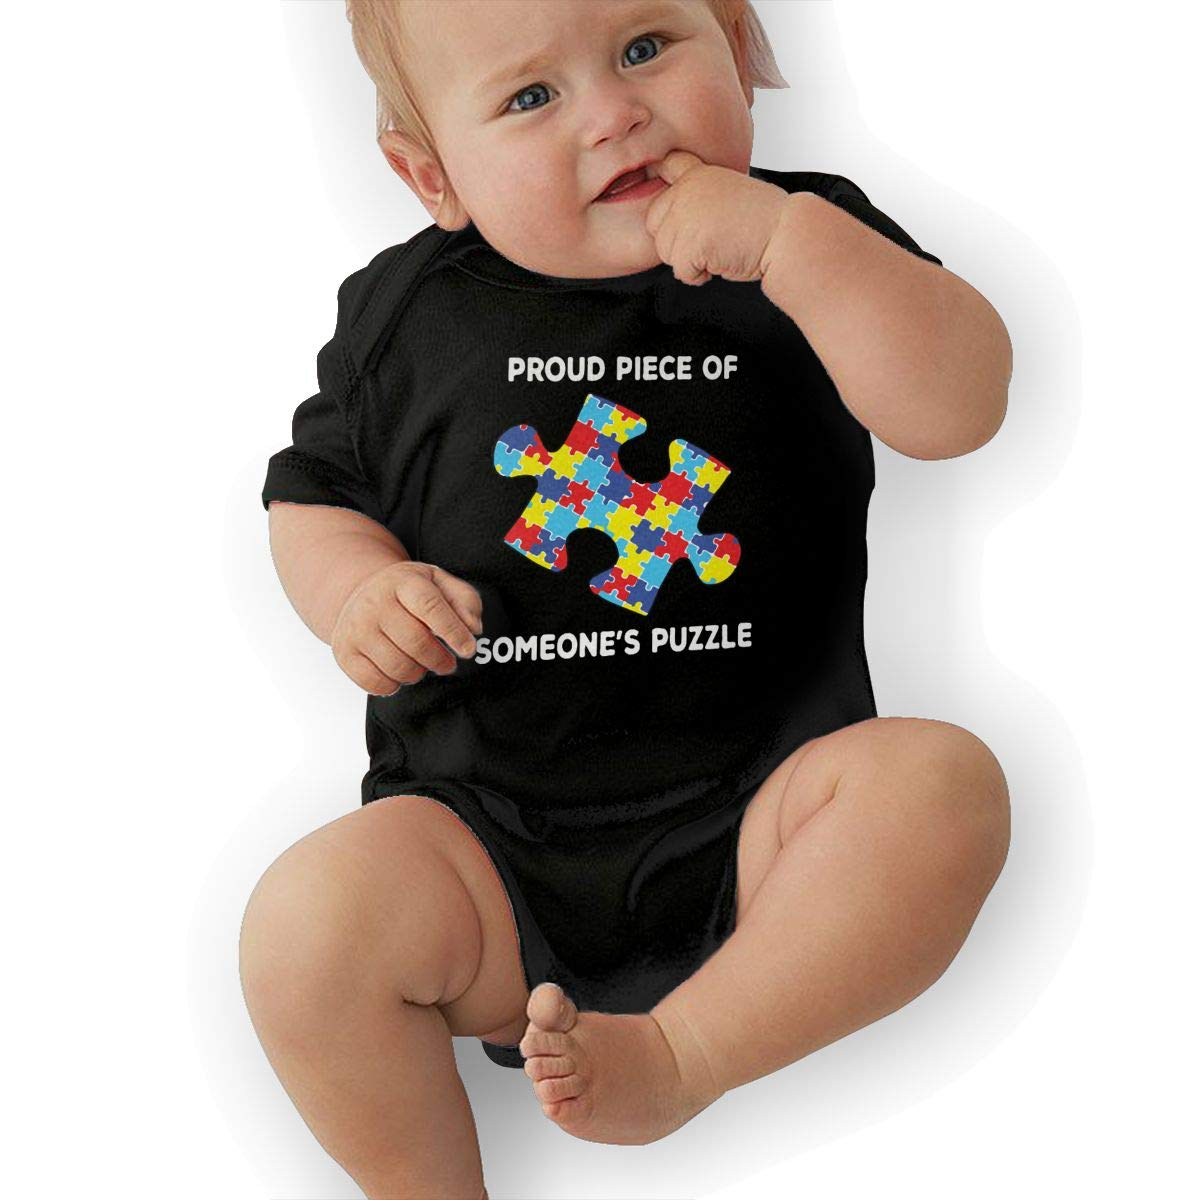 U88oi-8 Short Sleeve Cotton Rompers for Baby Girls Boys Soft Proud Piece of Someones Puzzle Autism Awareness-1 Onesies